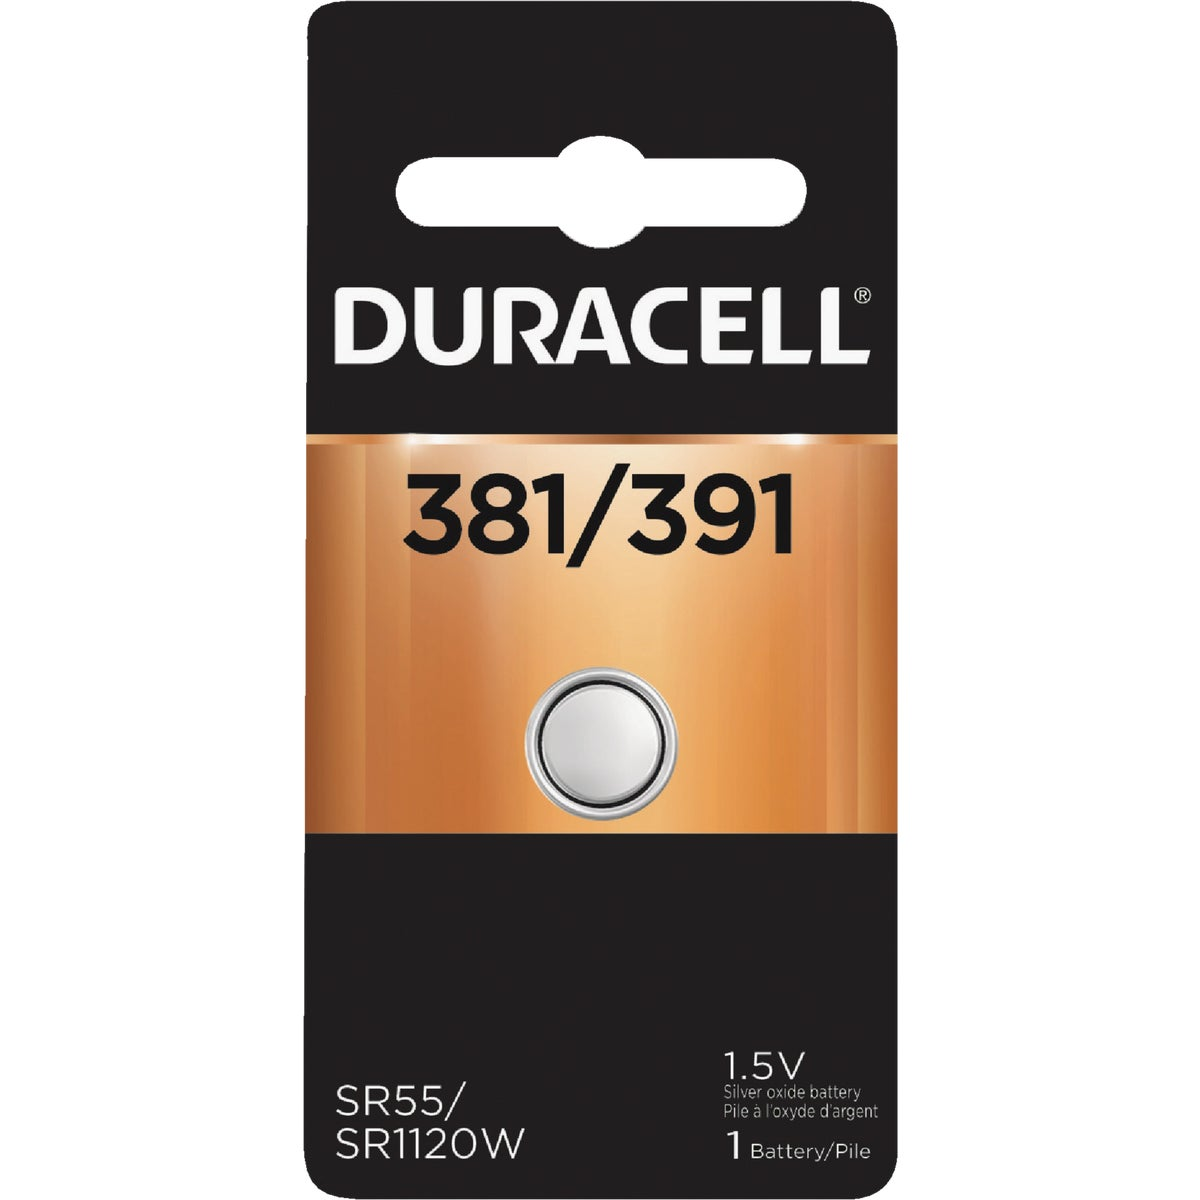 D381/391 1.5V WA BATTERY - 42087 by P & G  Duracell